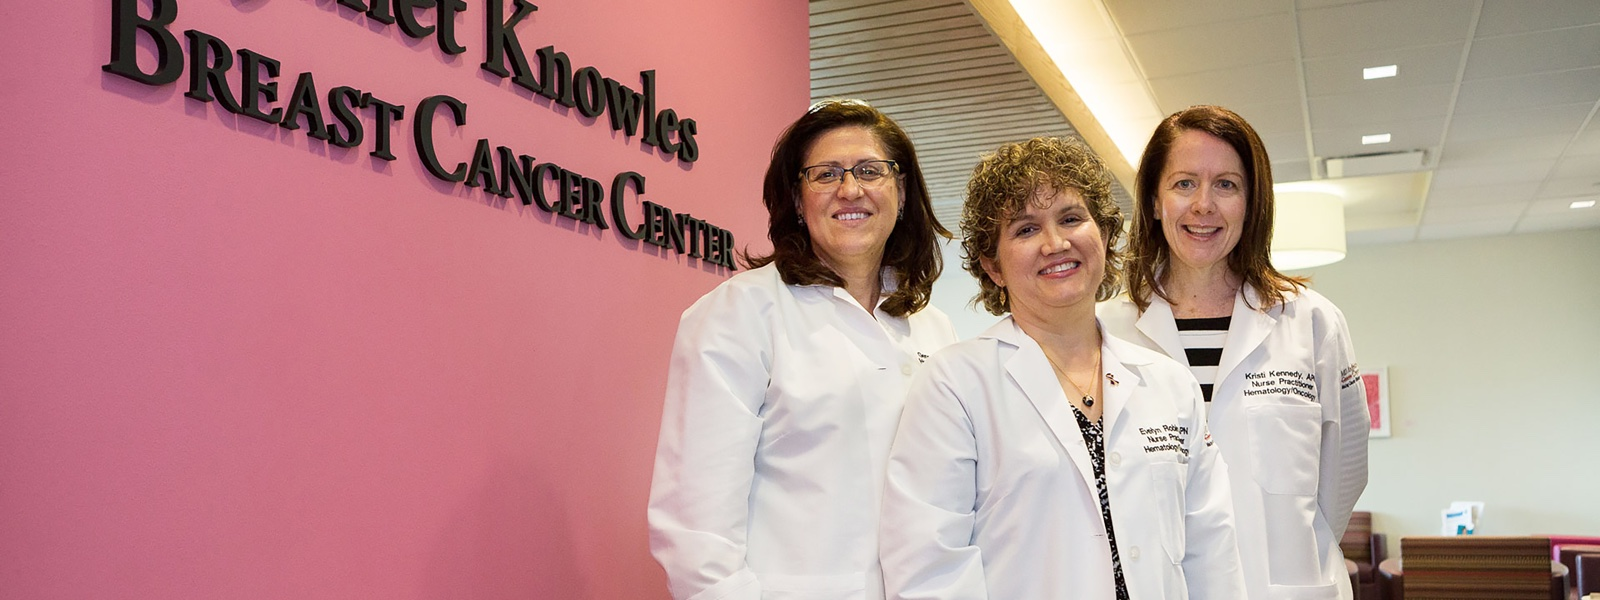 janet knowles breast cancer center